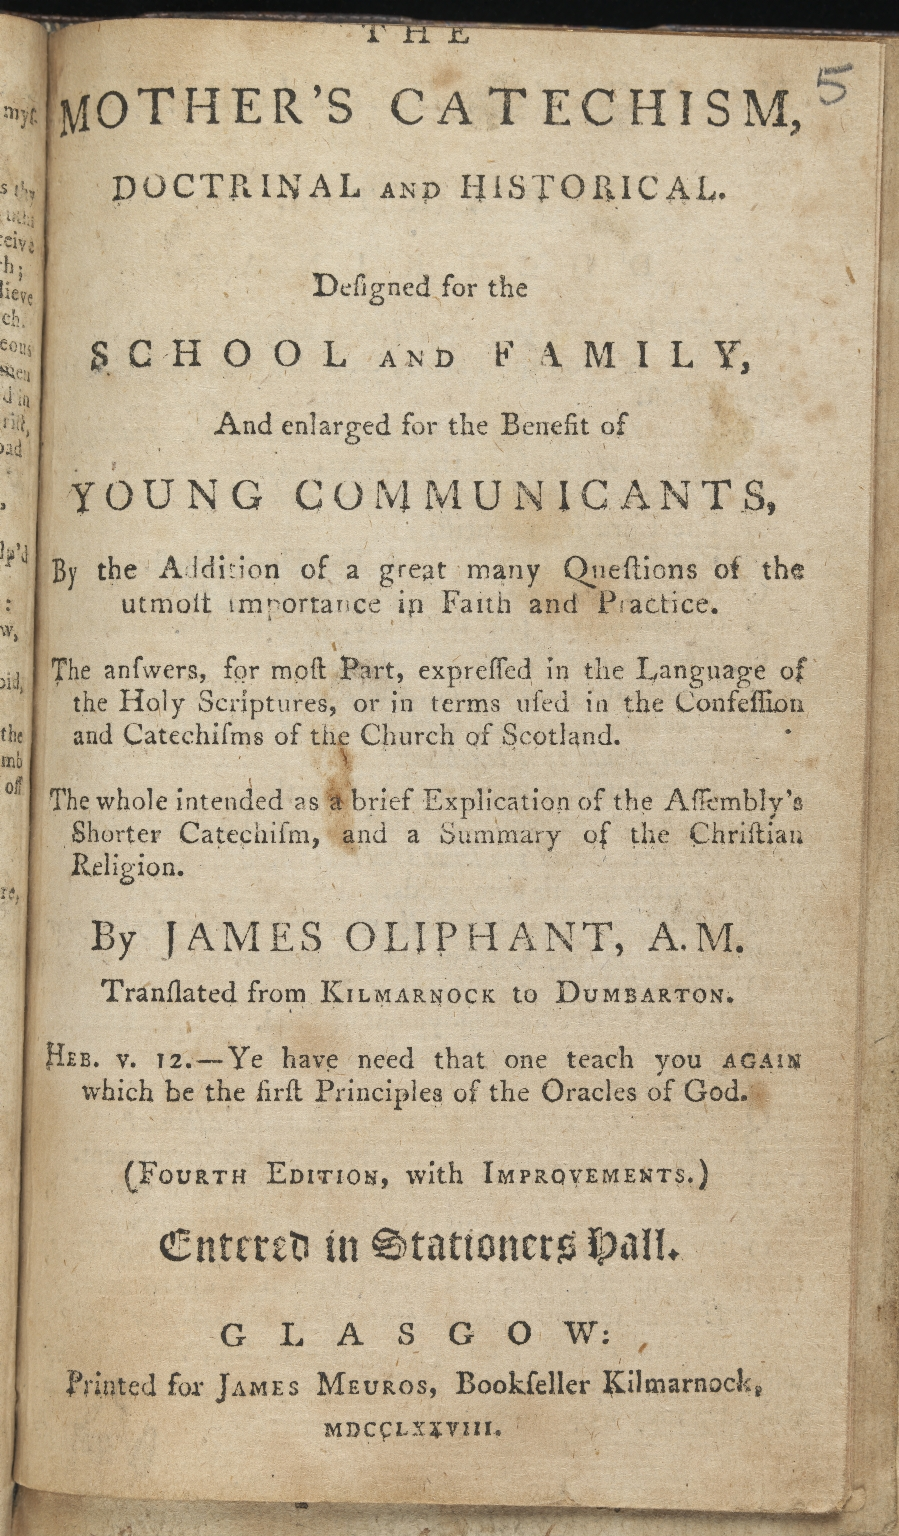 The mother's catechism doctrinal and historical, Title page